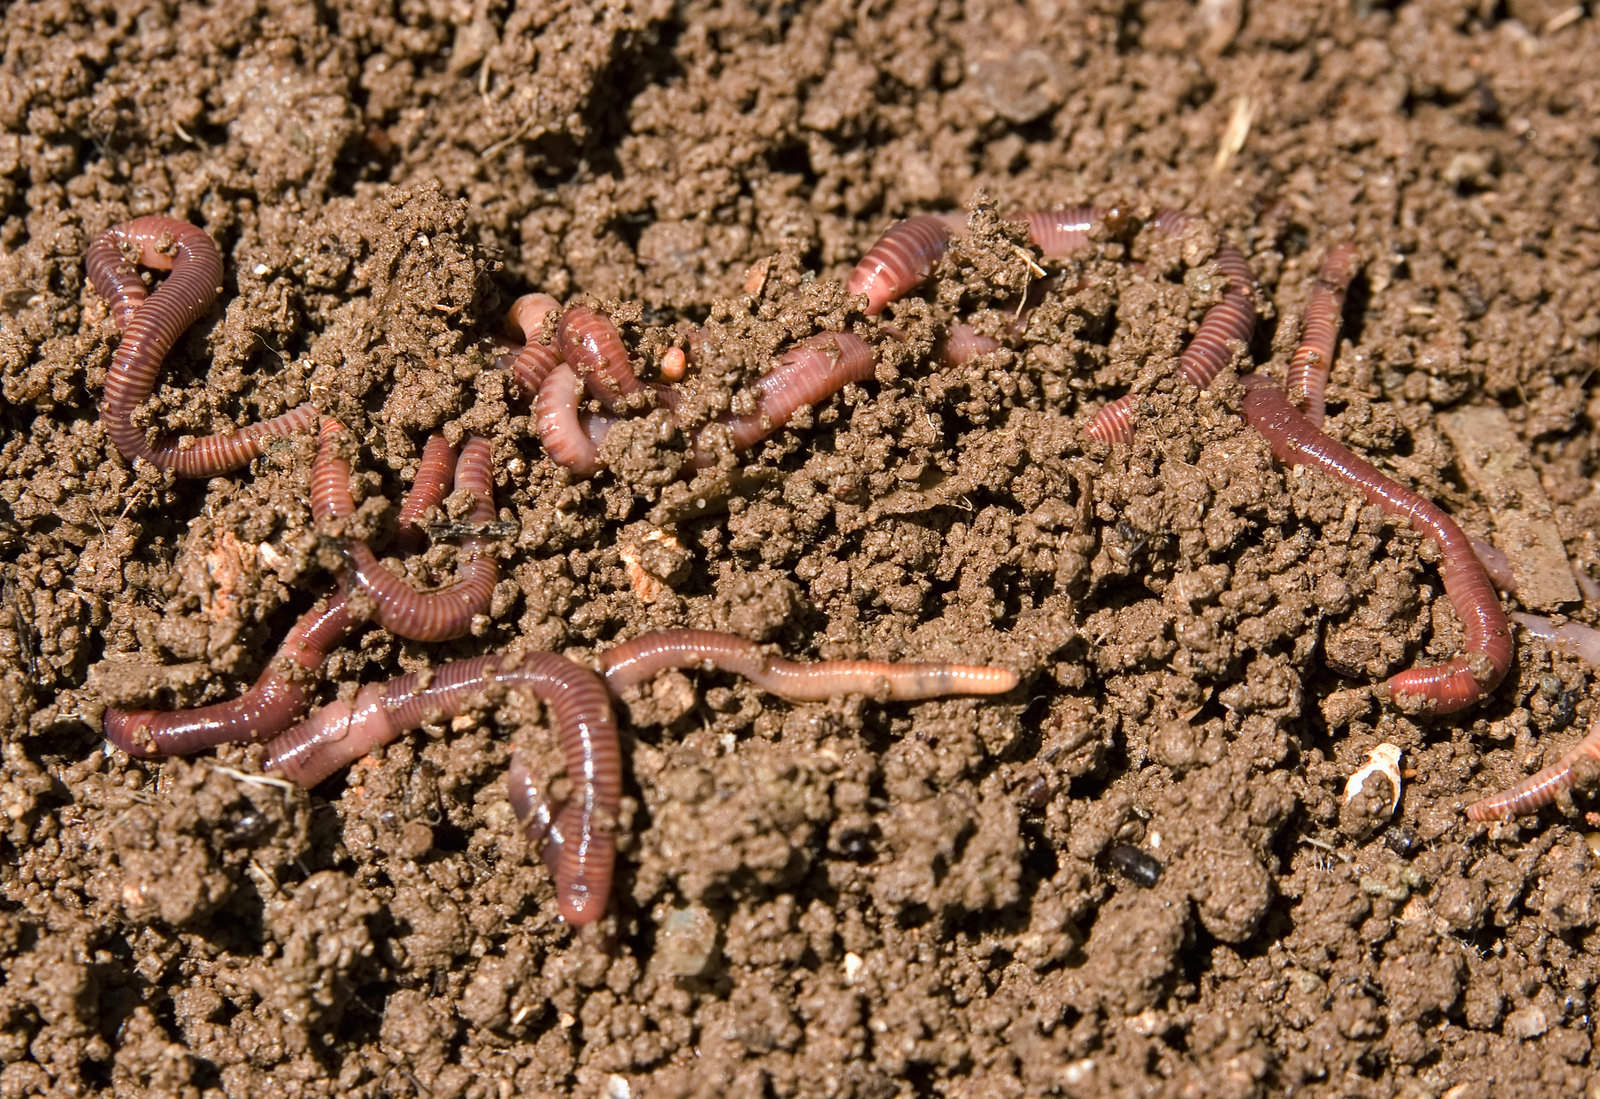 Worms That Are Bad For Your Garden [EXPLAINED]